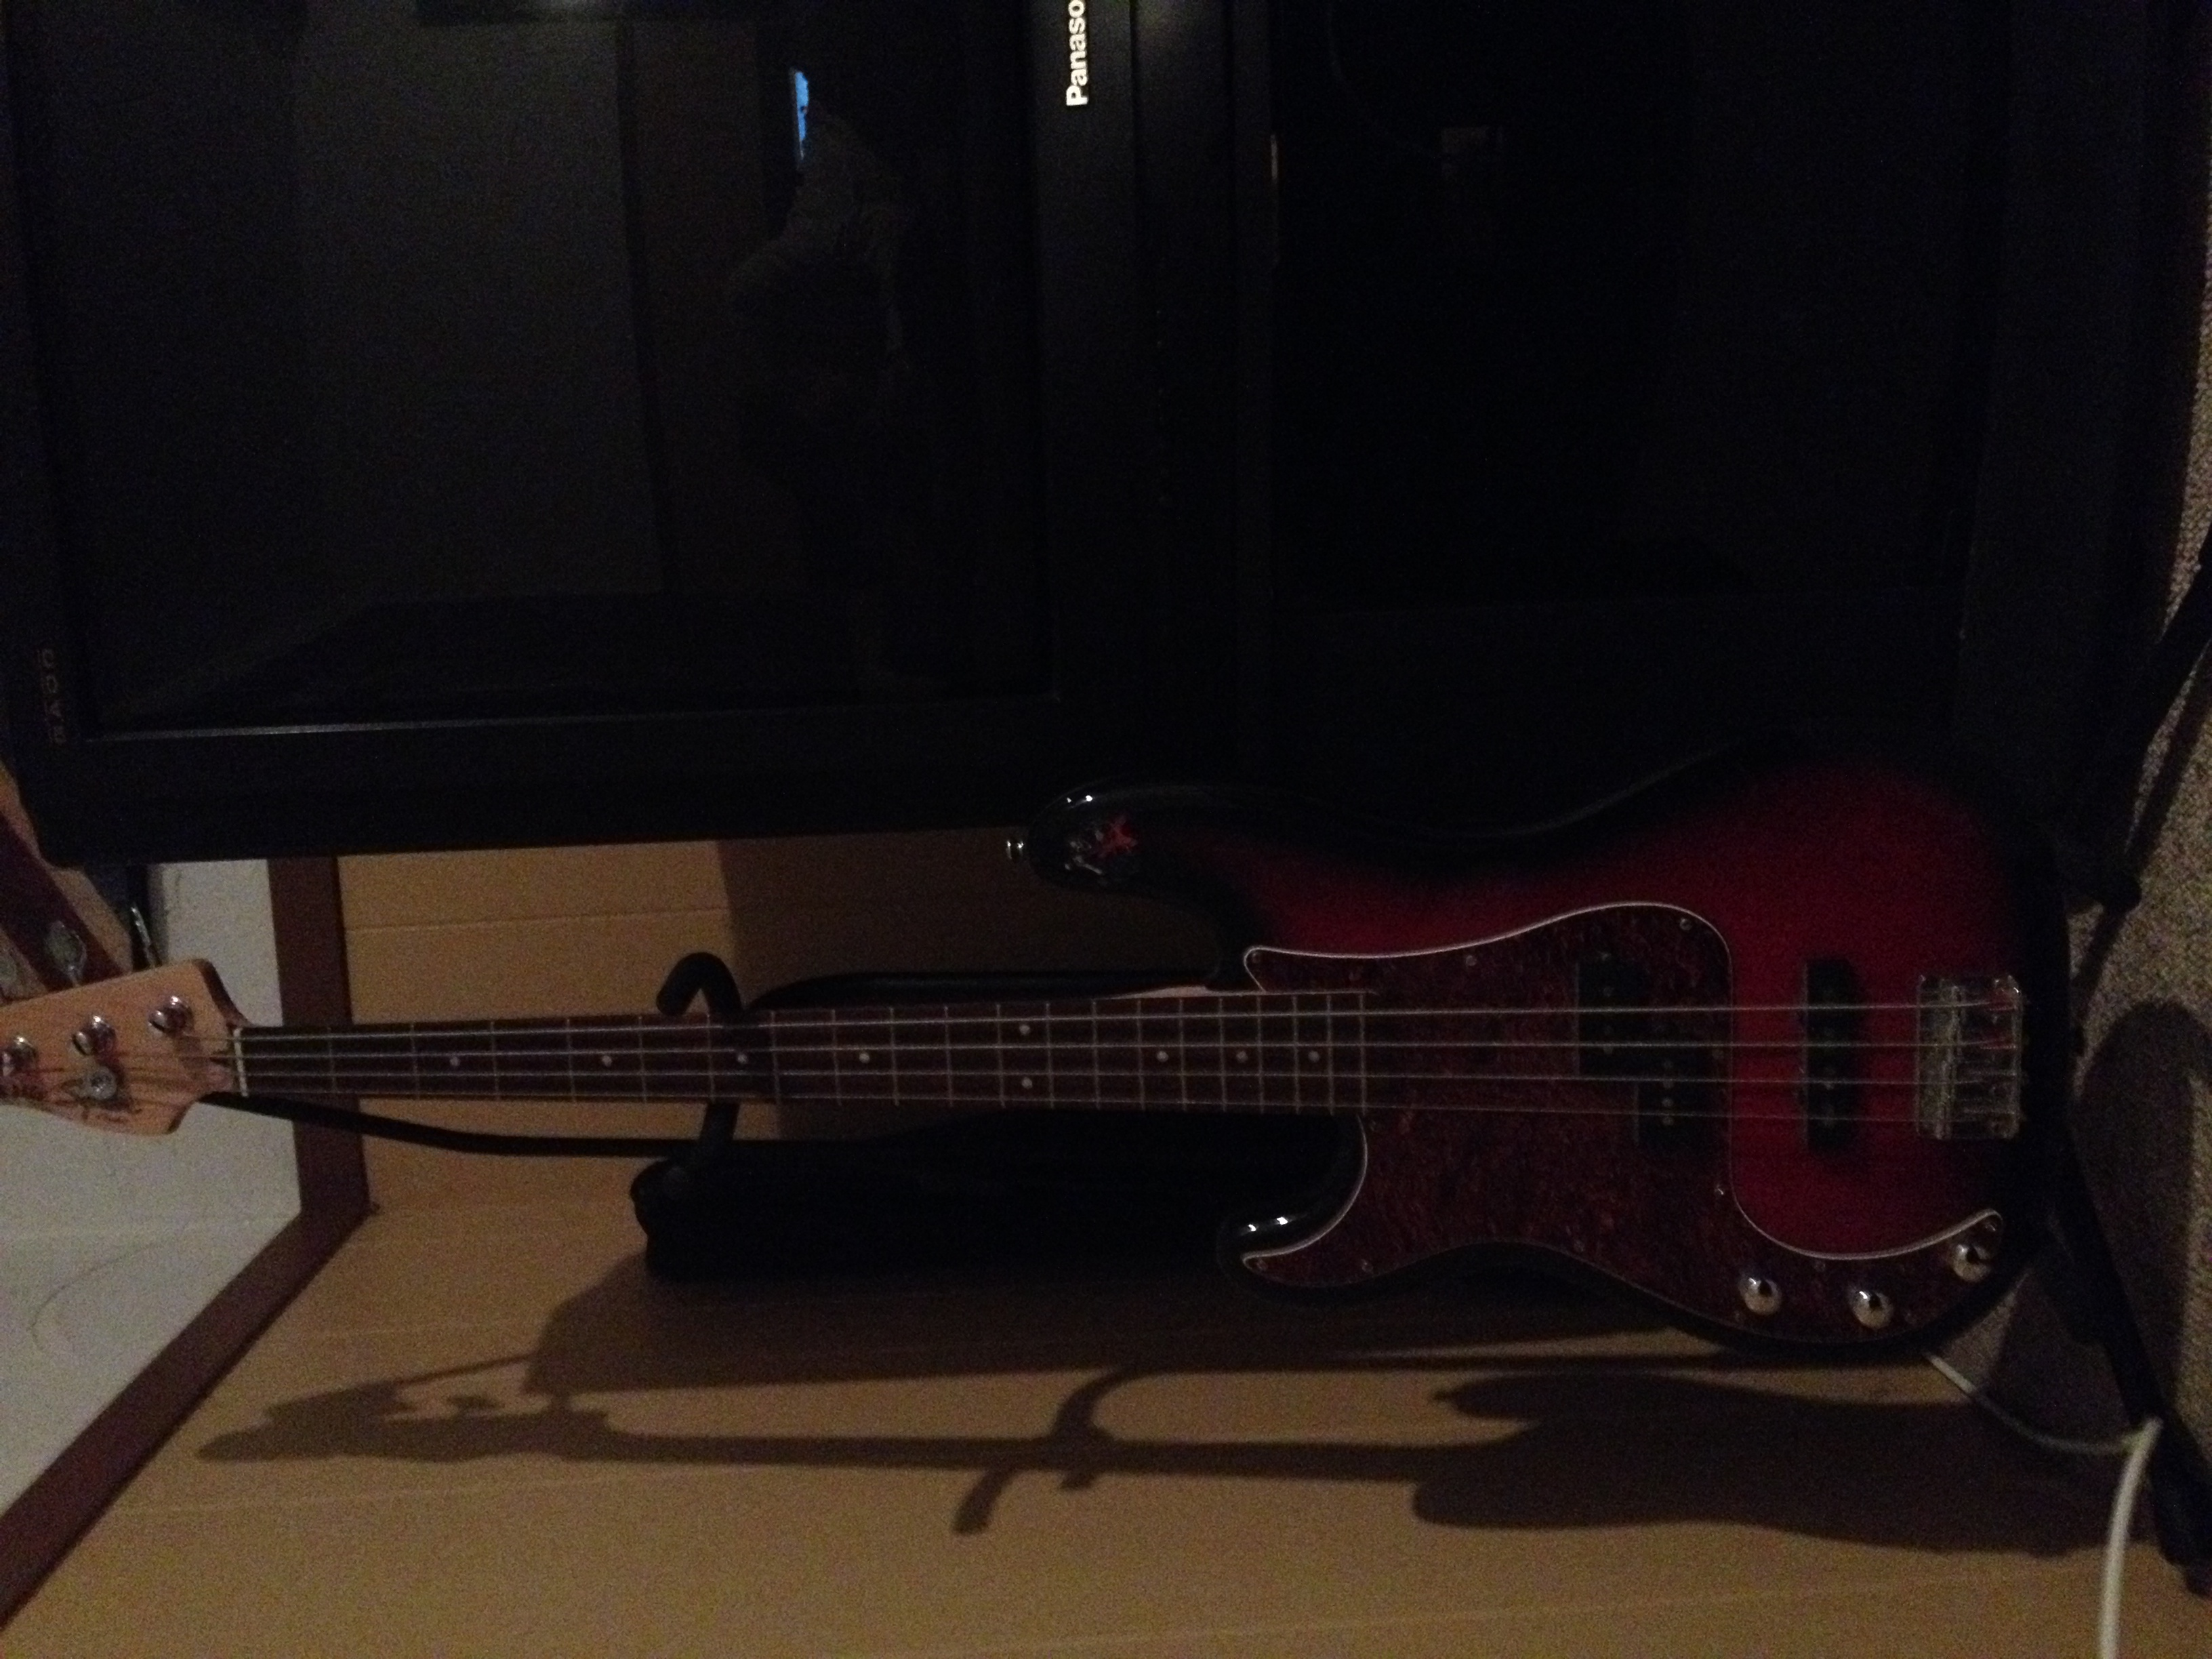 My old bas, bass gitaar :)